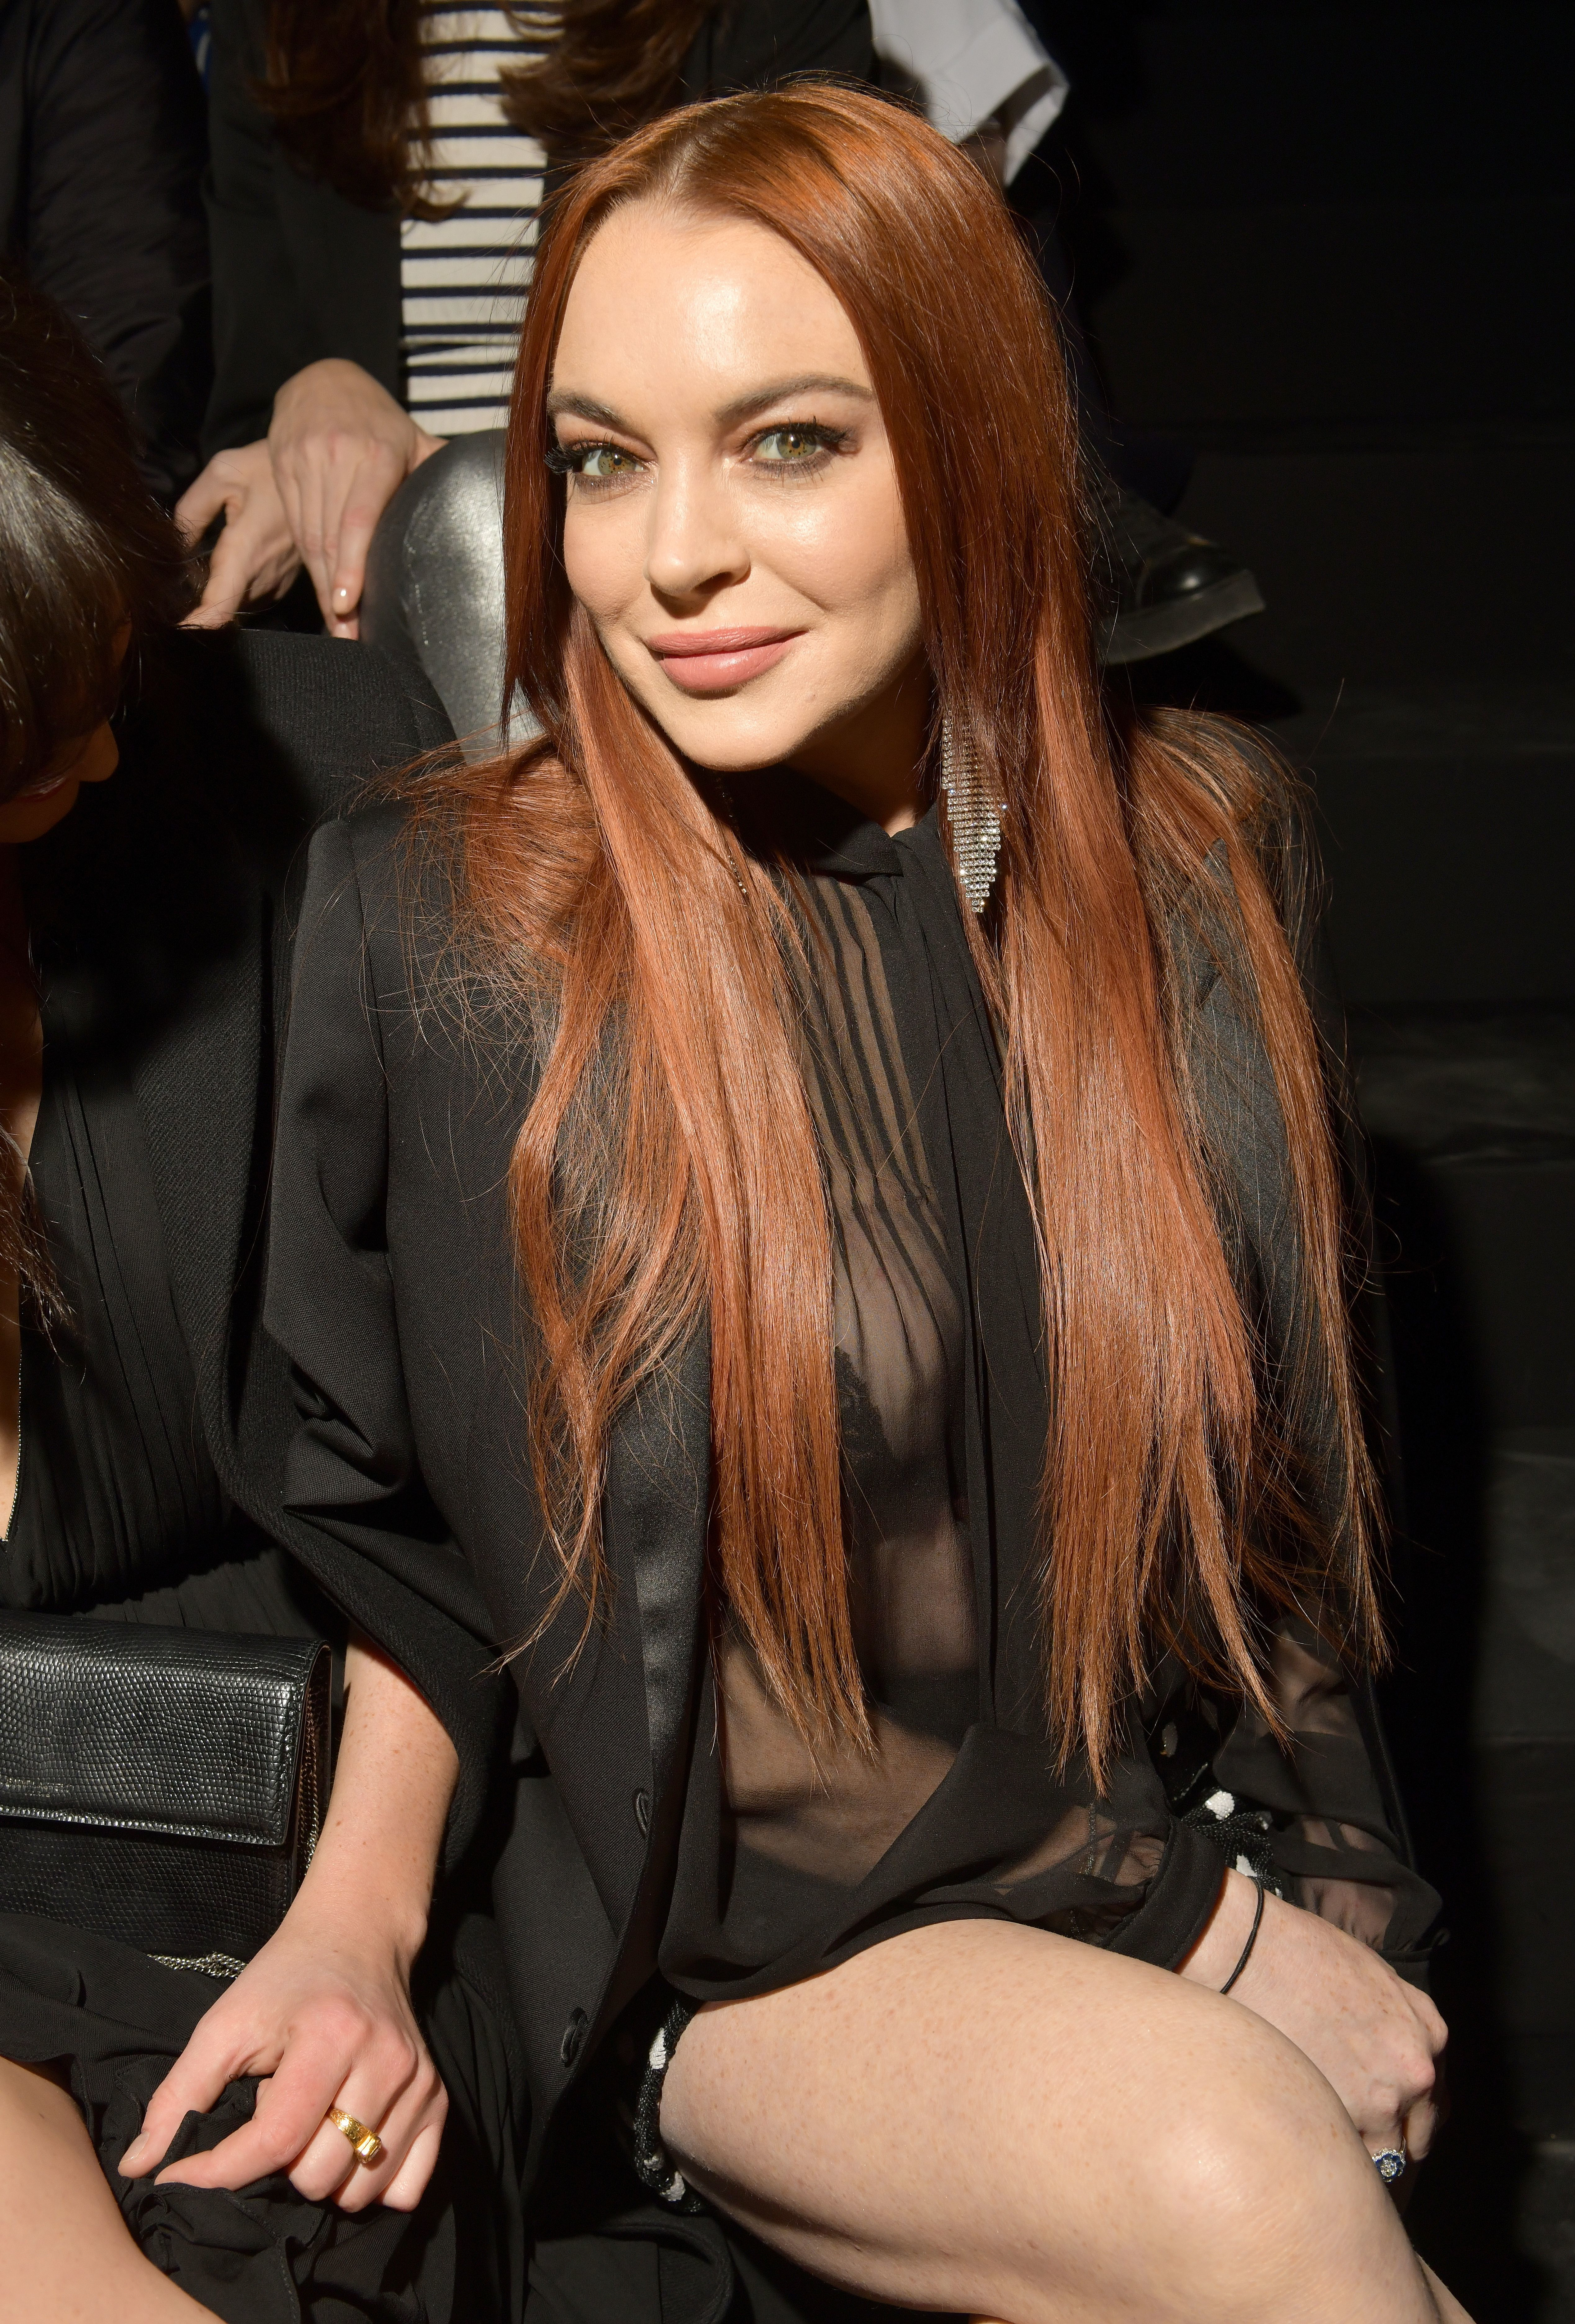 Lindsay Lohan appears in the front row of the Saint Laurent show for Fall/Winter 2019 at Paris Fashion Week on Feb. 26, 2019.